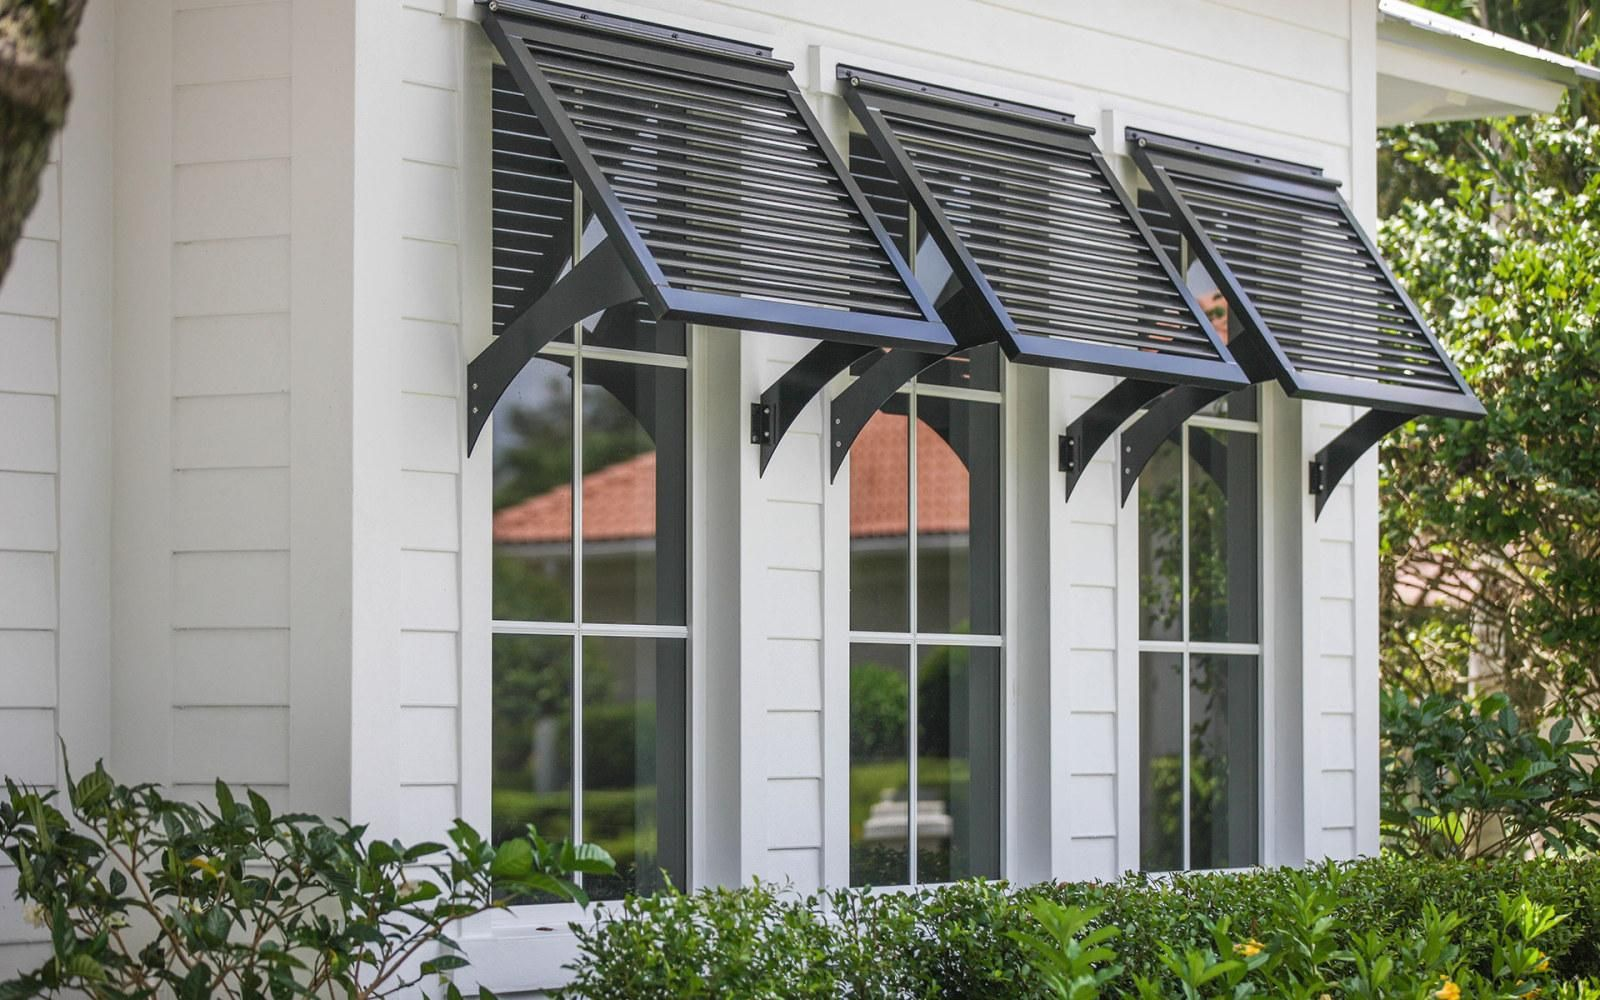 Exterior Shutters For Windows 5 Homes With Bahama